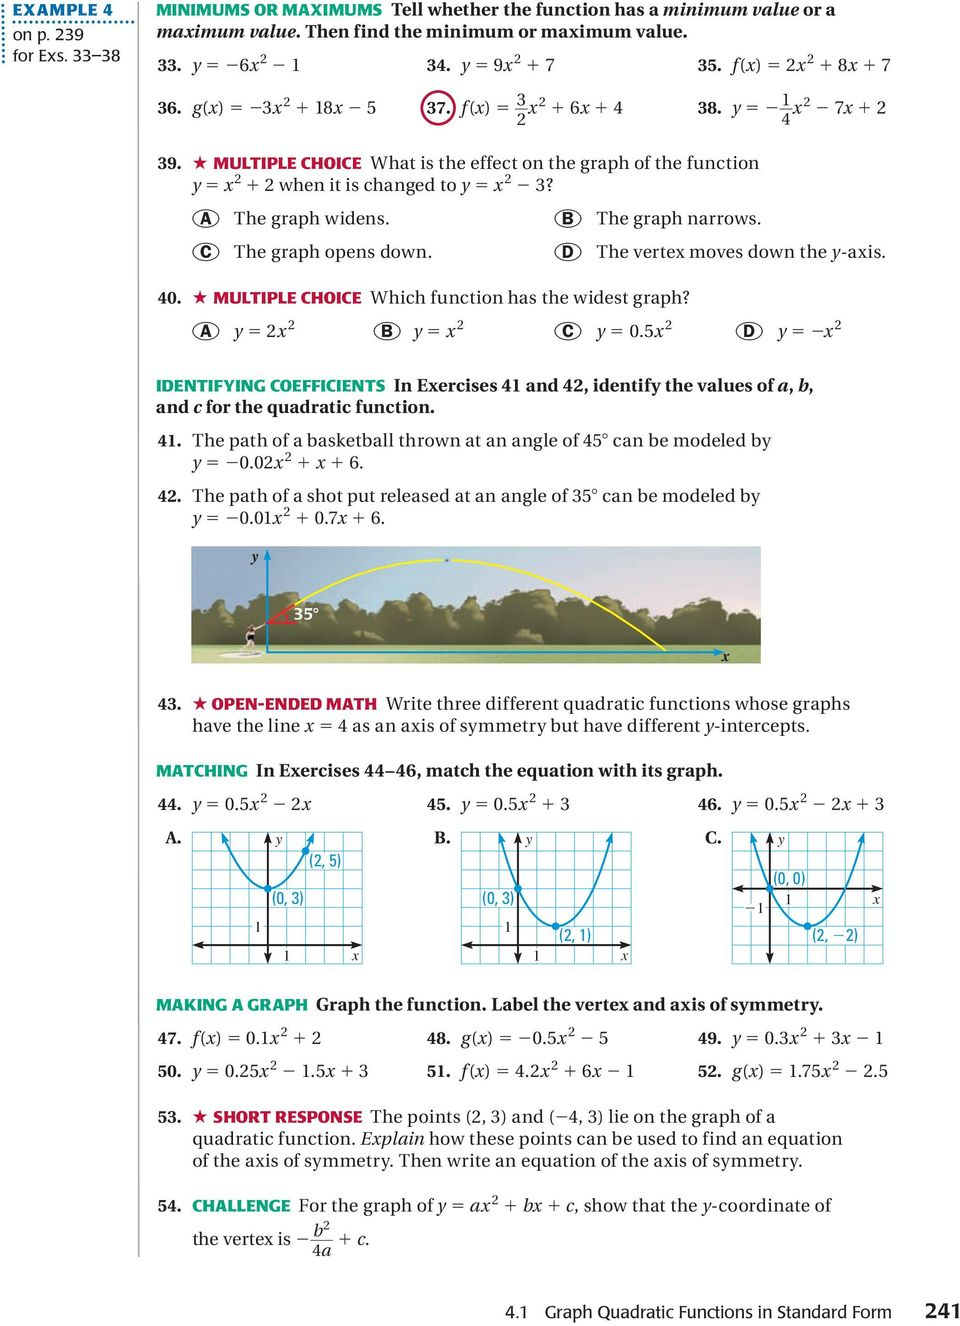 Quadratic Function Families Guided Notes Quadratic - Wallpaperzen org